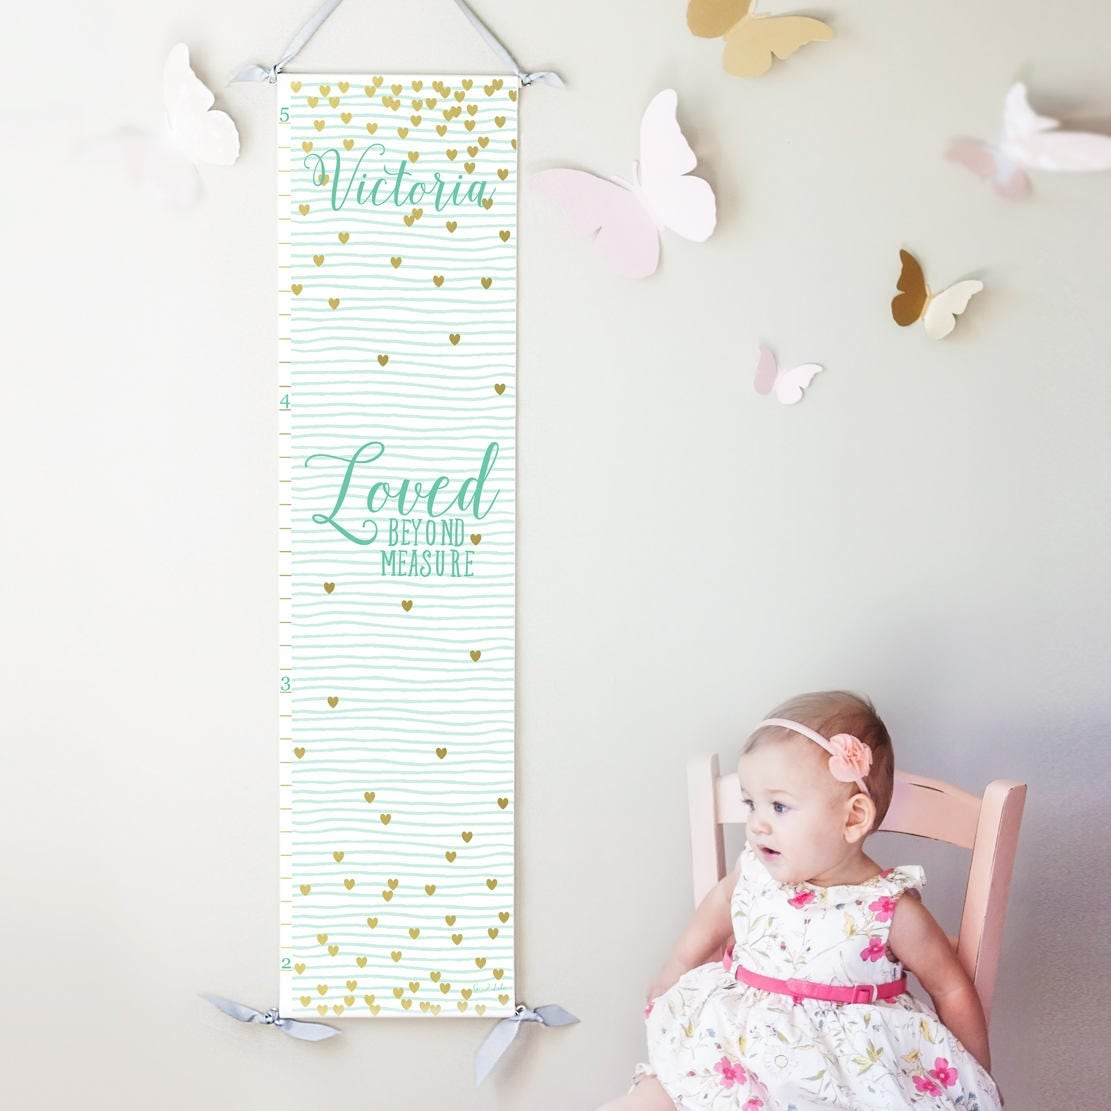 Personalized loved beyond measure canvas growth chart with mint personalized loved beyond measure canvas growth chart with mint stripes and gold hearts nvjuhfo Image collections